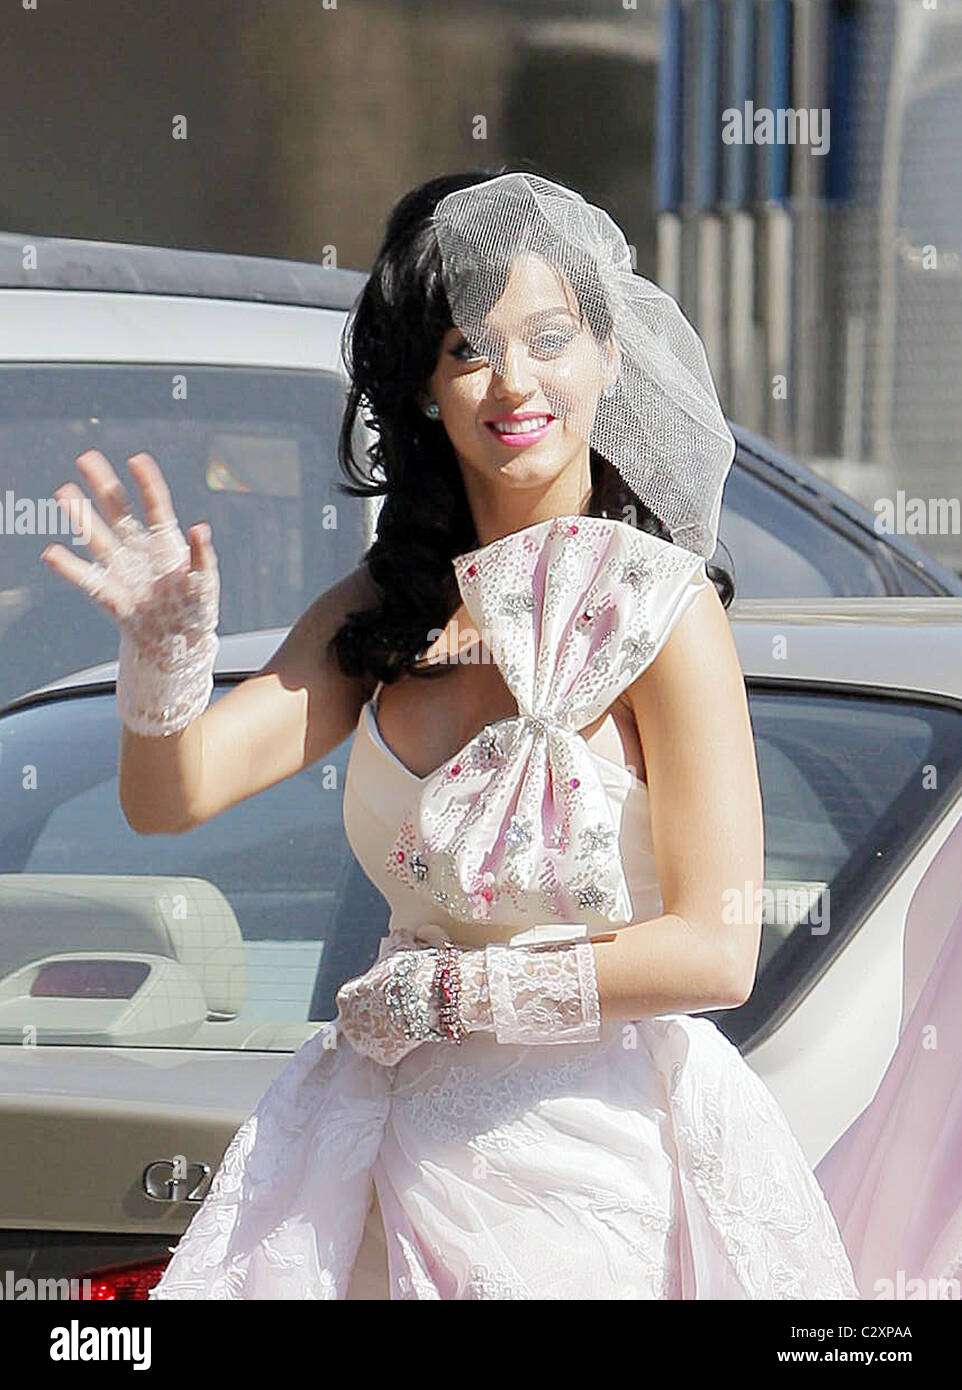 Katy Perry Films A Scene For Her New Music Video In Wedding Dress And Veil Los Angeles California